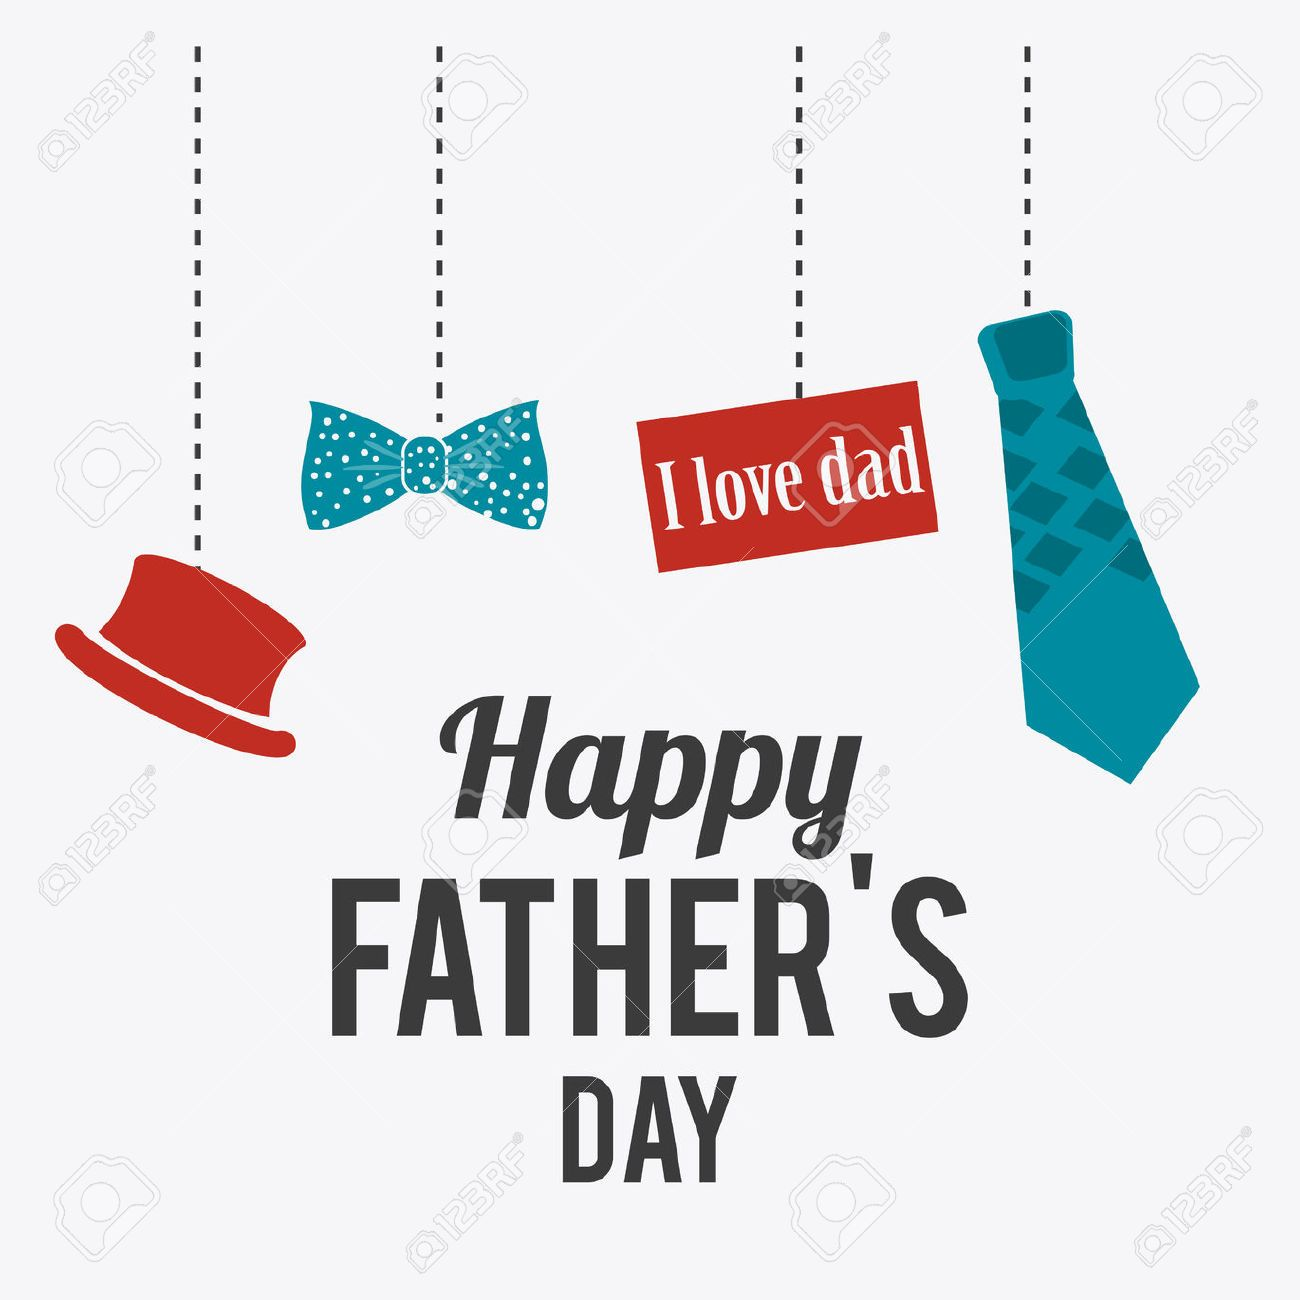 Happy Fathers Day Cards | Father's Day Greetings ...